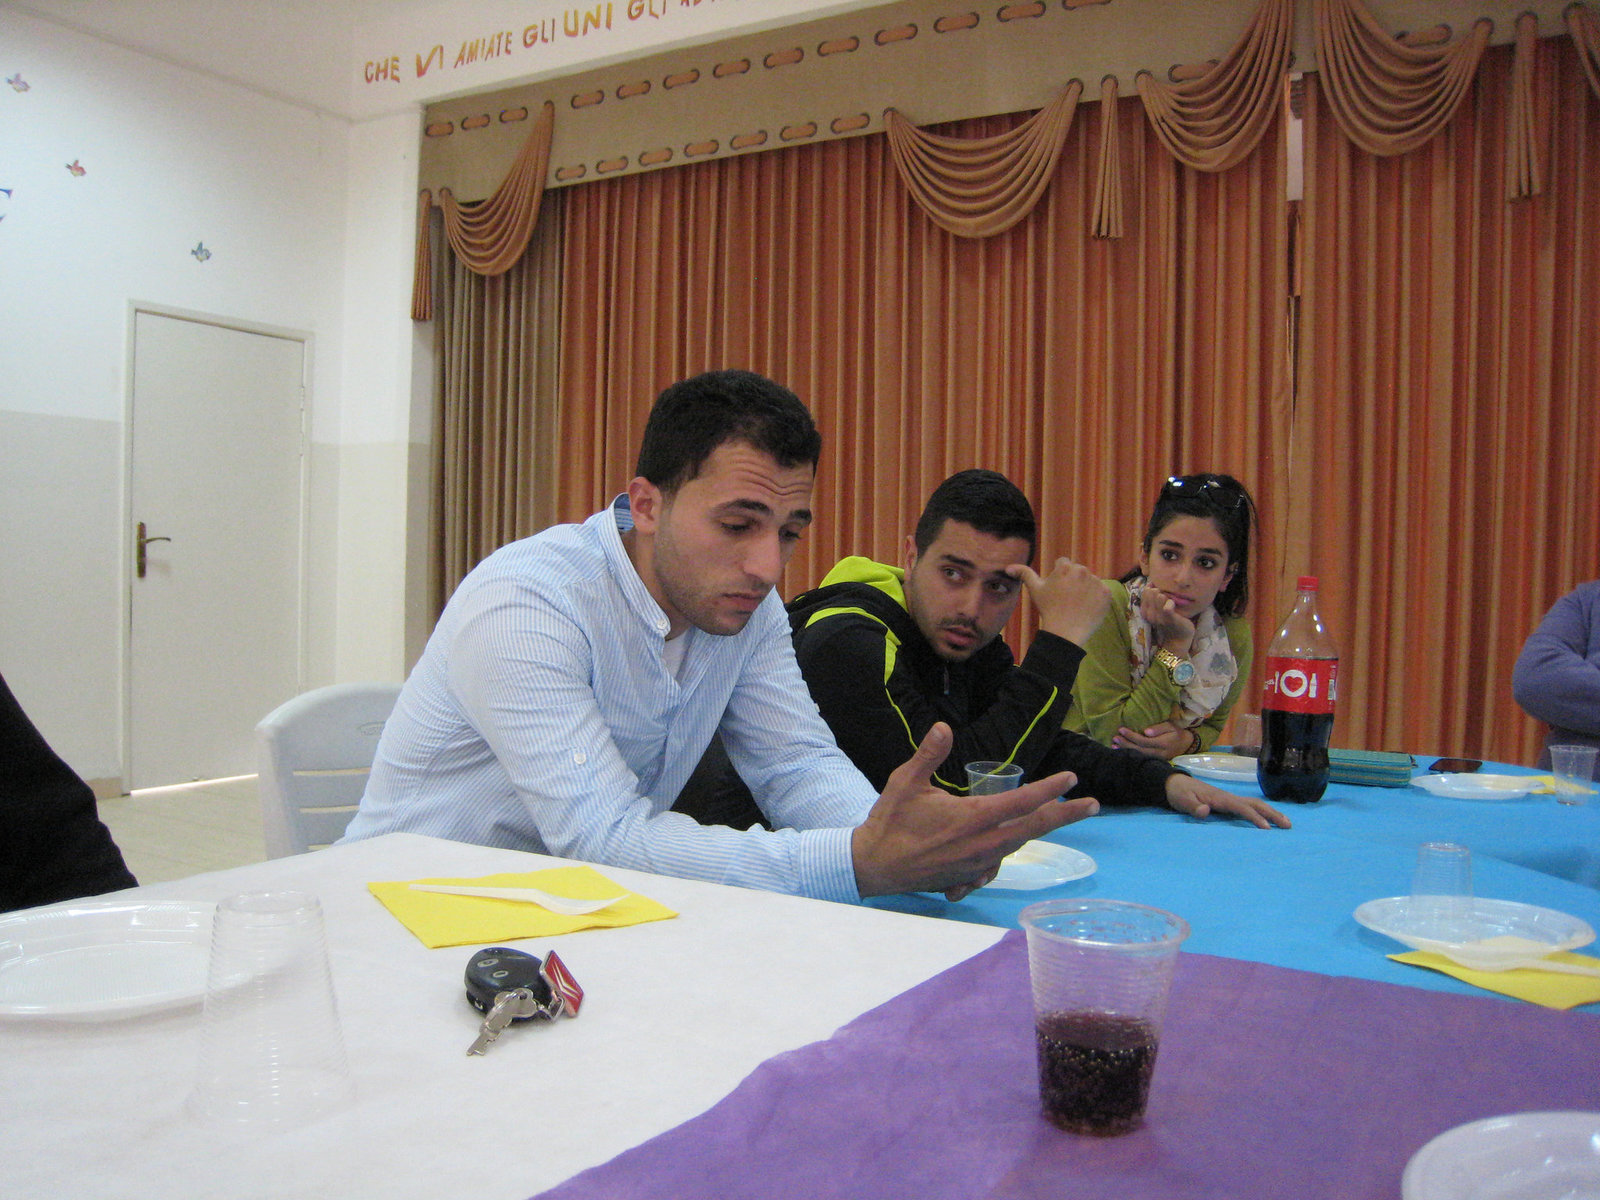 Youth in Jenin sharing their stories